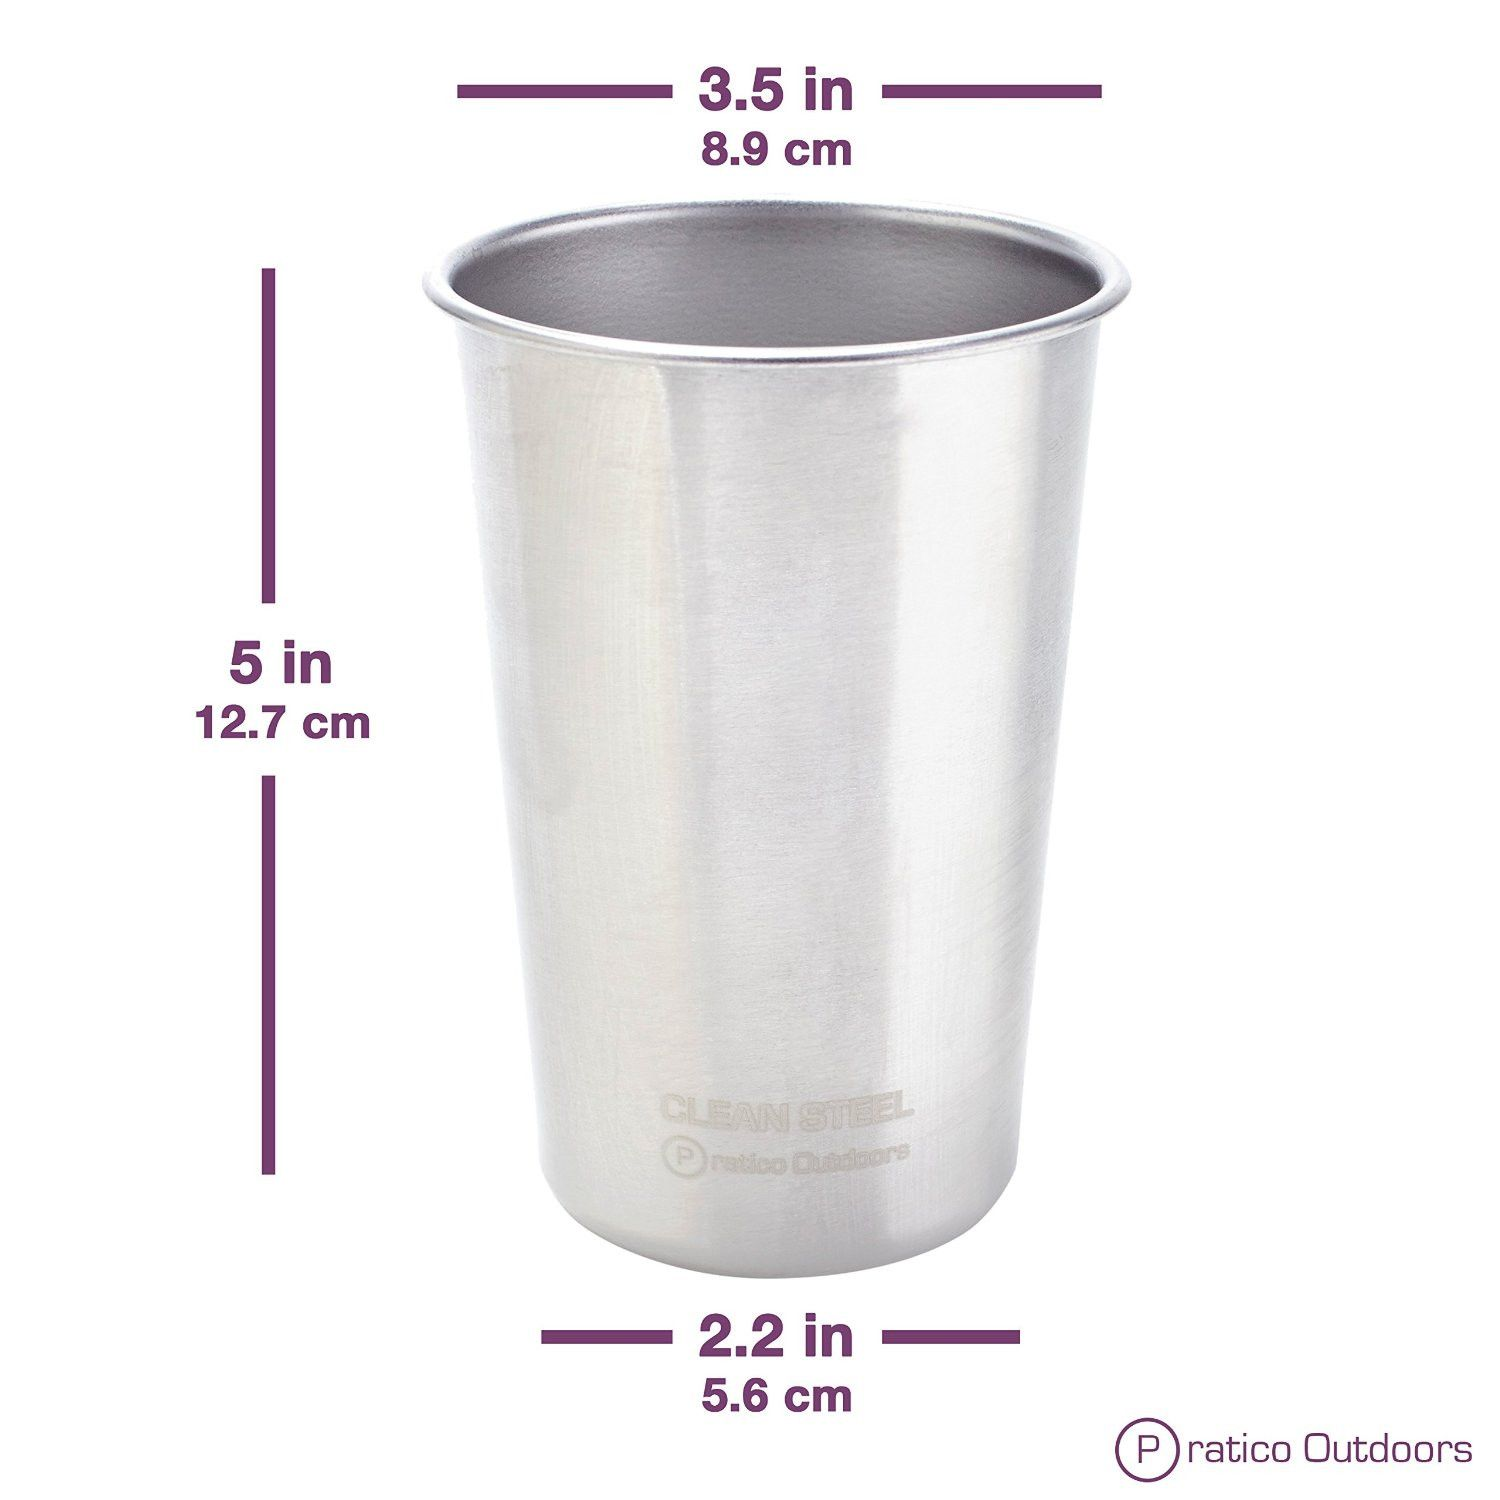 Stainless Steel Cups 14 5 Oz 4 Pack Stainless Steel Cups Steel Stainless Steel Tumblers